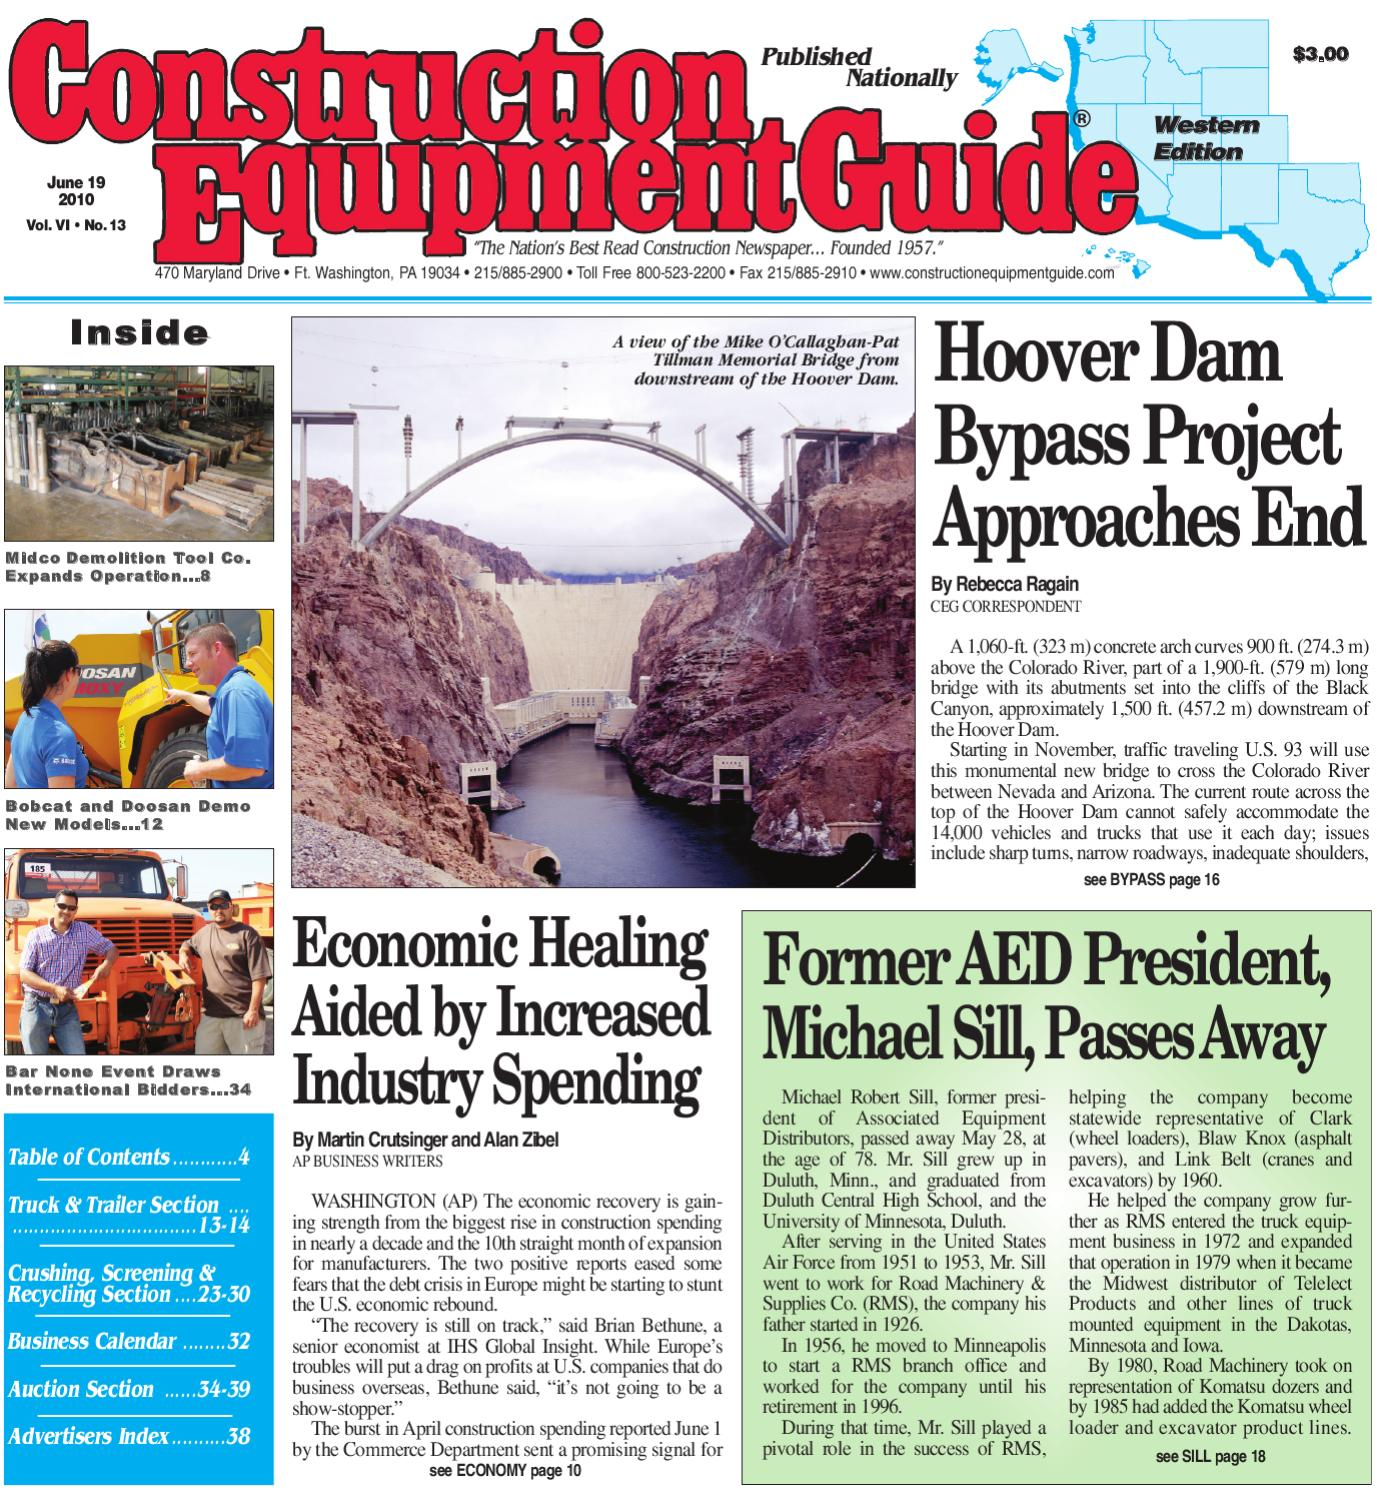 West_13_2010 by Construction Equipment Guide - issuu